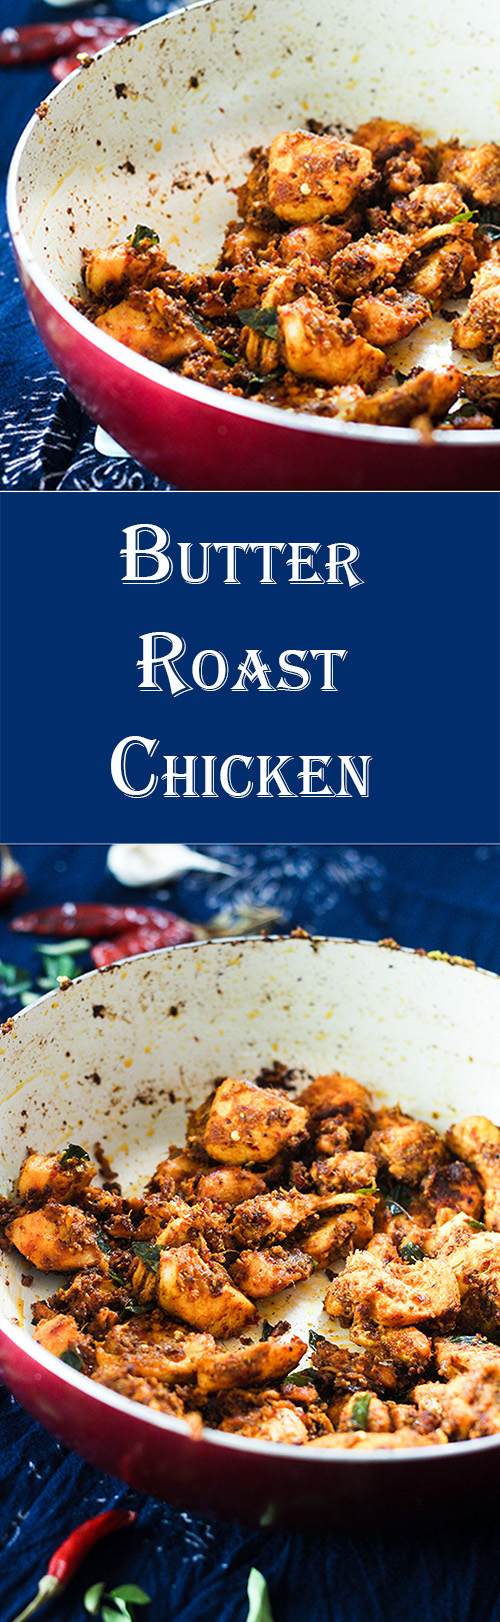 Butter Roast Chicken recipe is a very yummy and tasty dish that is very different from other recipes. Made with fresh aromatic spices, this dish is surely a keeper.